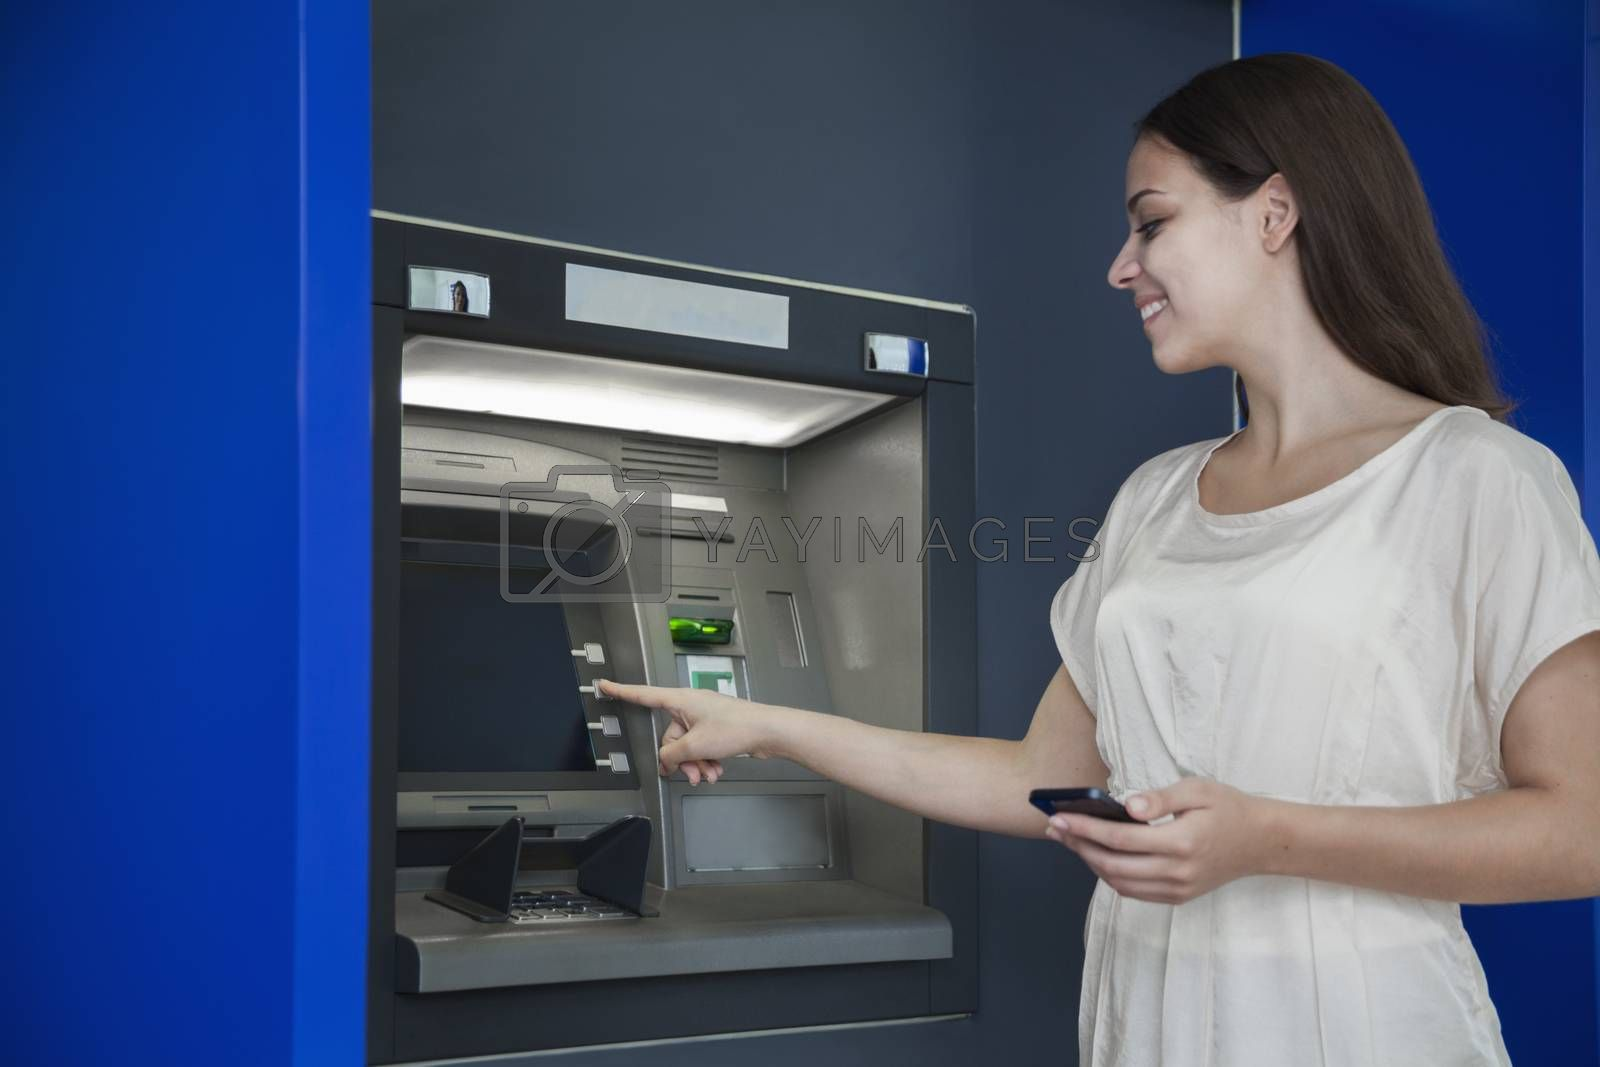 Smiling young woman withdrawing money from the ATM